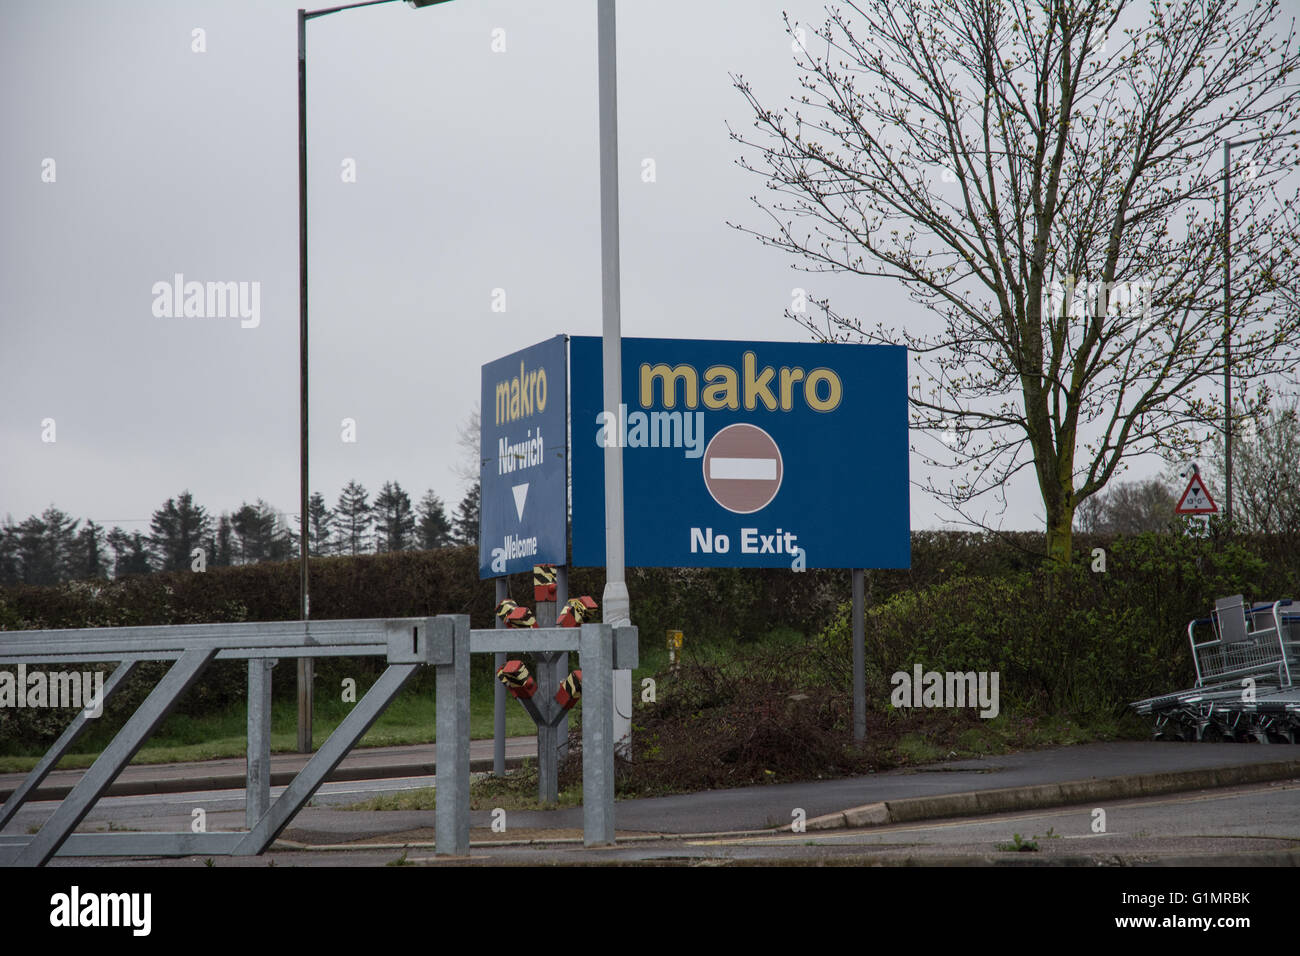 A no exit sign at Makro, Norwich. - Stock Image